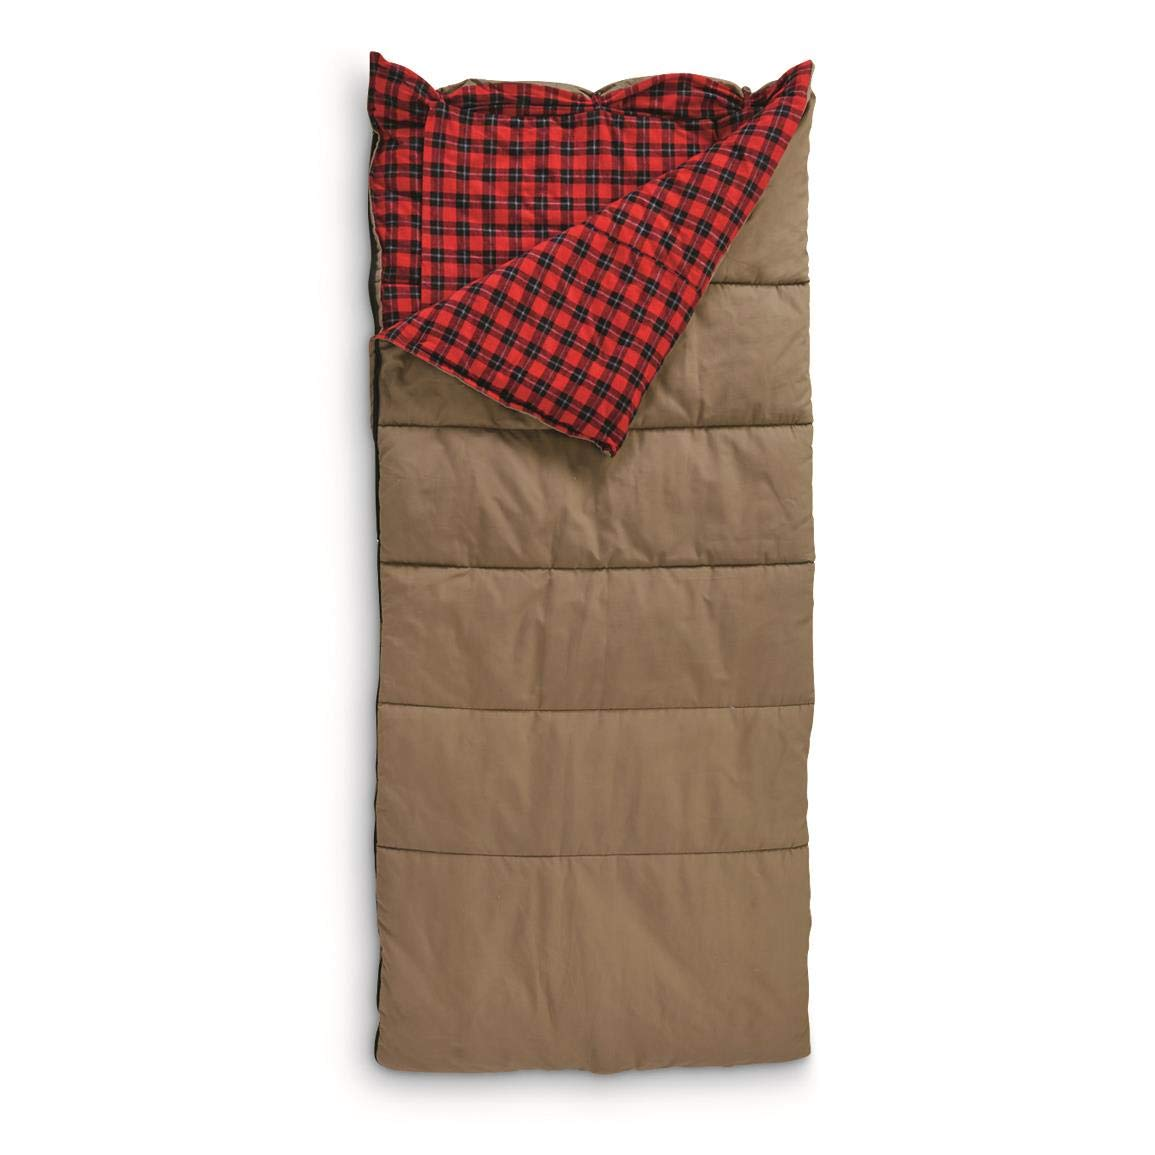 Guide Gear Canvas Hunter Sleeping Bag with Pillow Pocket, 40°F